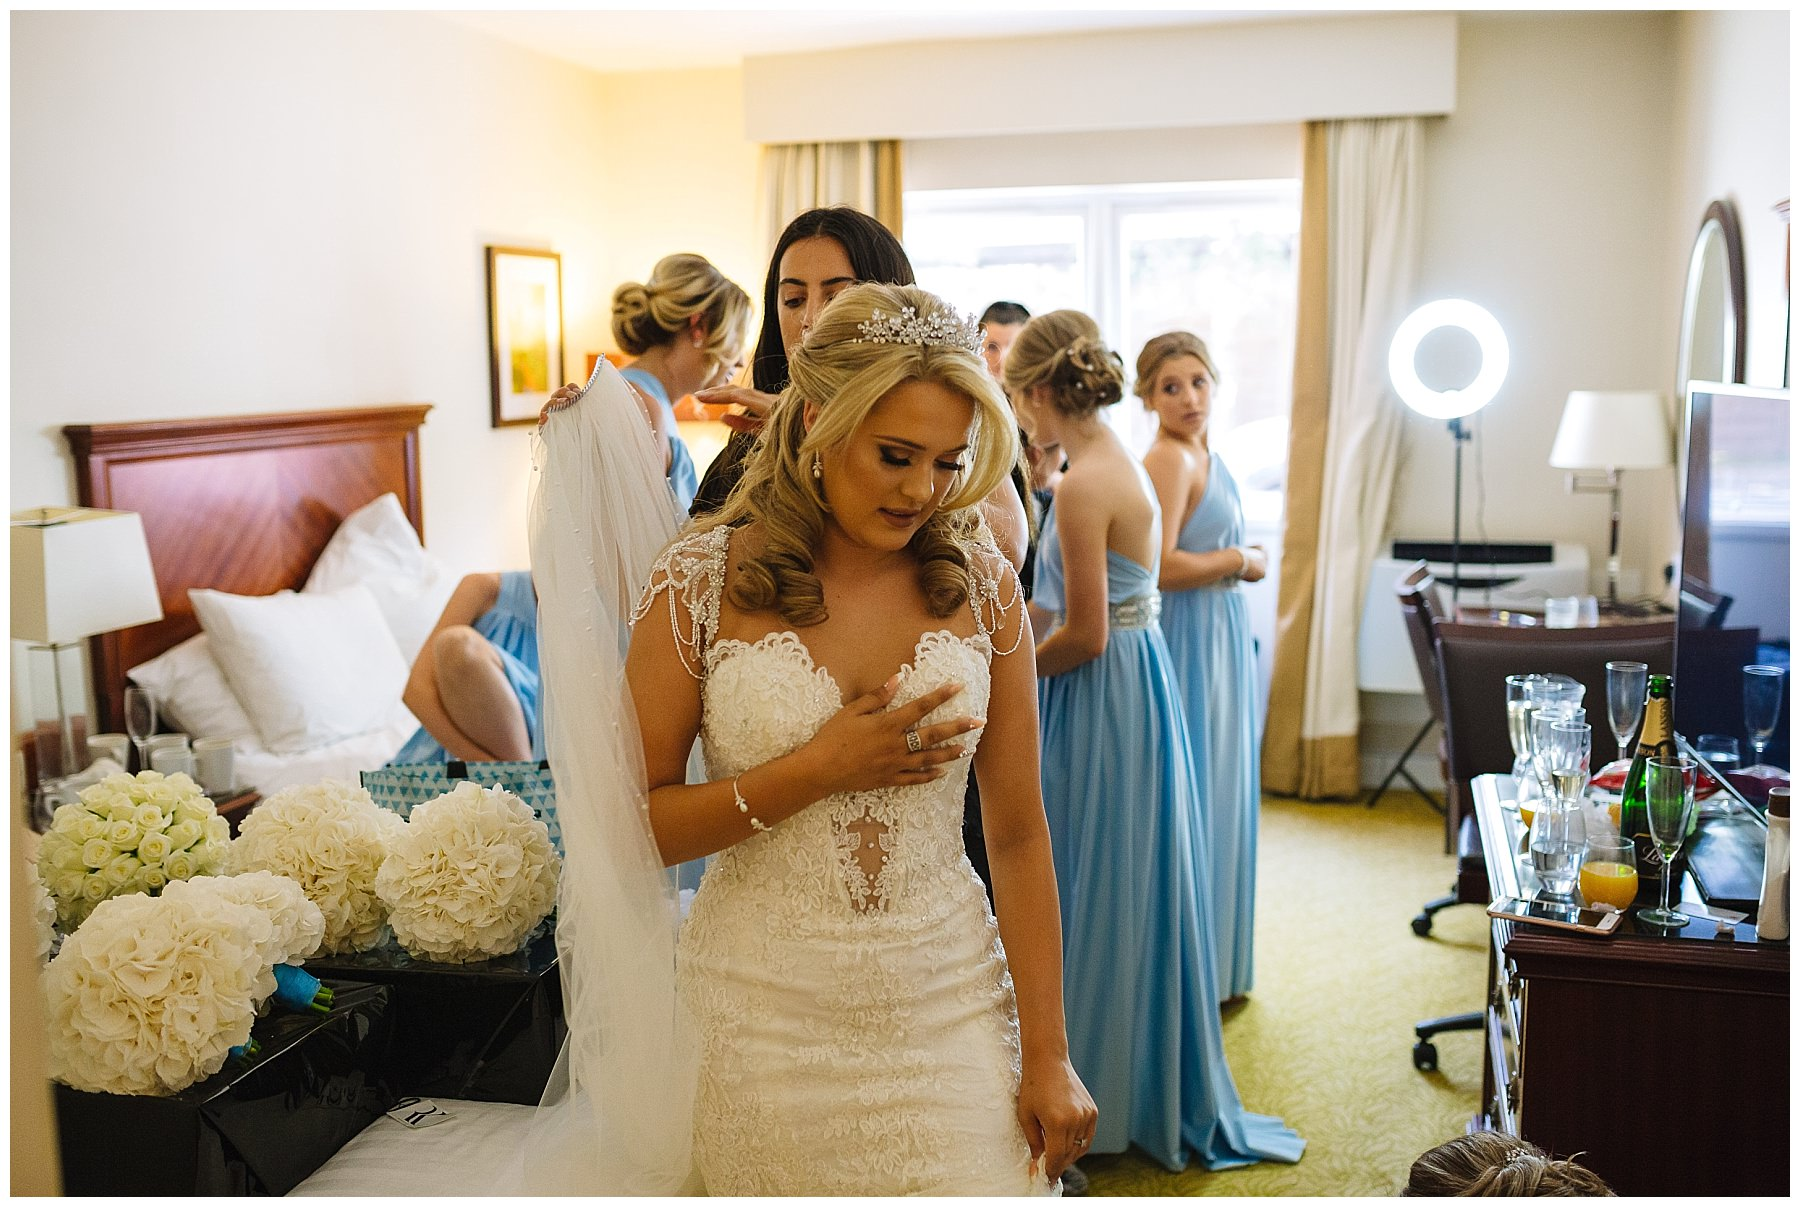 bride in wedding dress has finishing touches applied